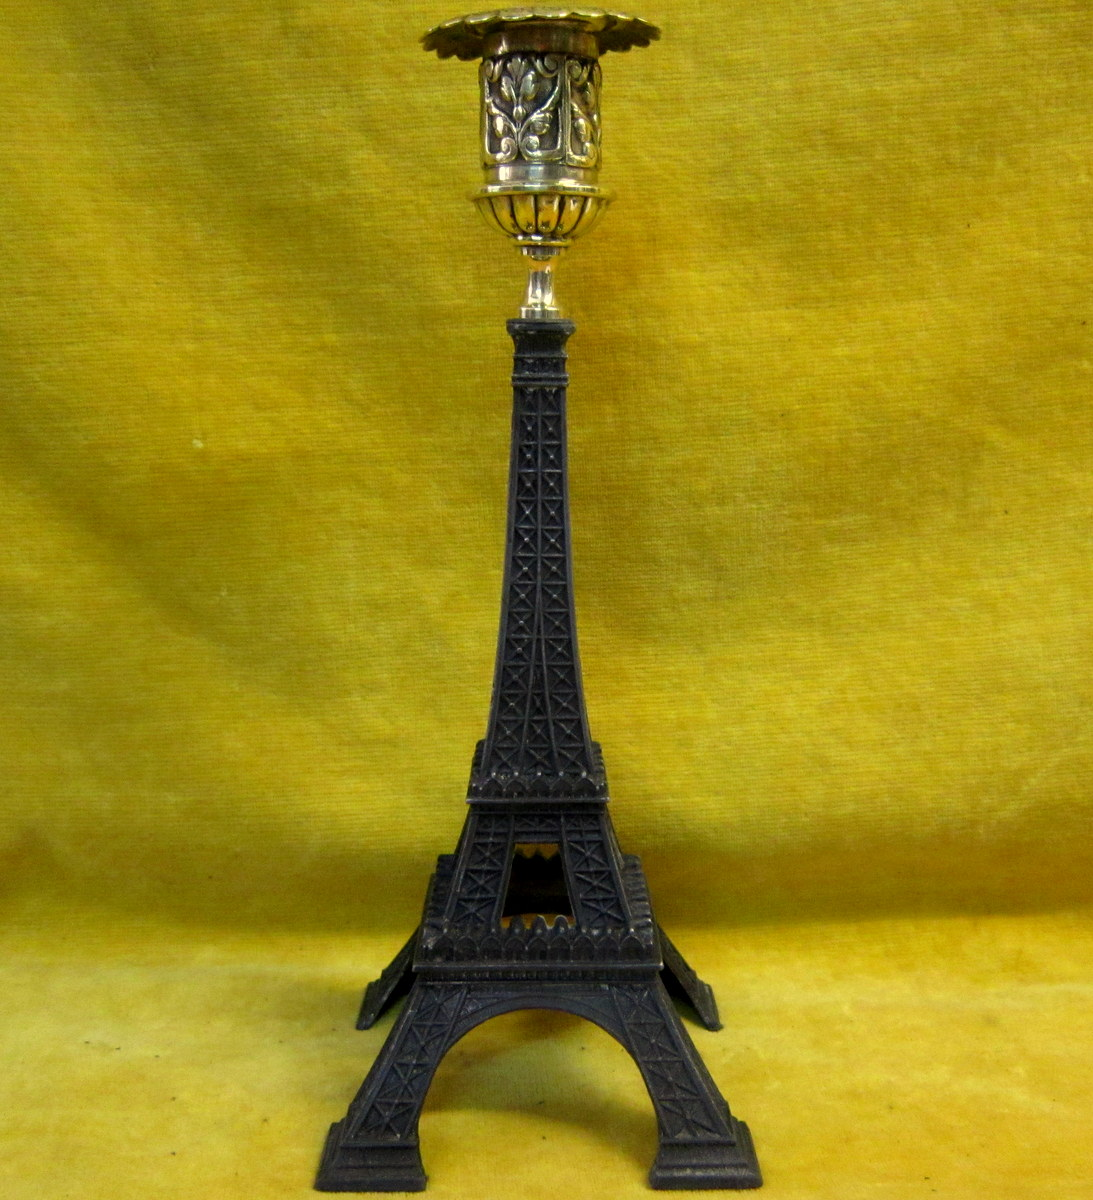 bougeoir tour eiffel exposition universel paris 1889 objets de curiosit. Black Bedroom Furniture Sets. Home Design Ideas